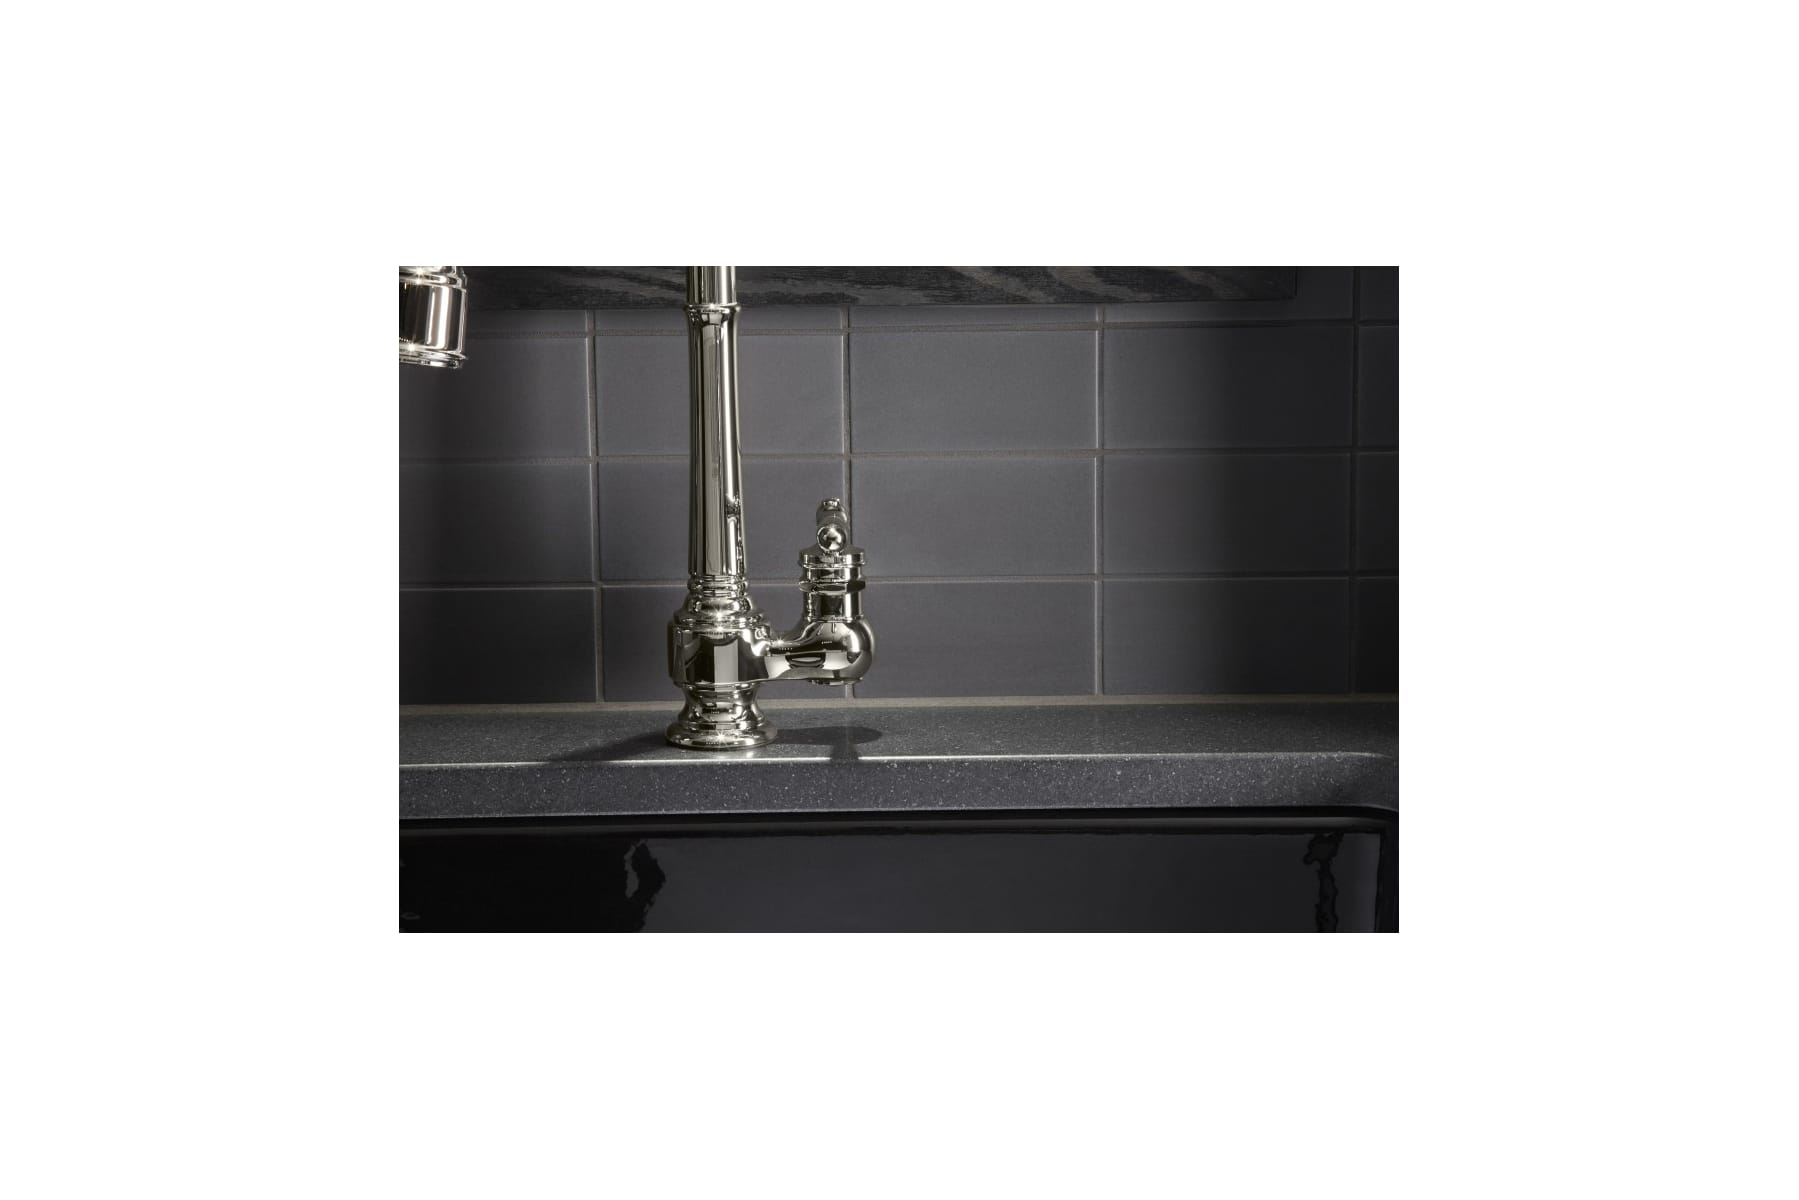 Kohler K-99260-VS Vibrant Stainless Artifacts Pullout Spray Kitchen ...